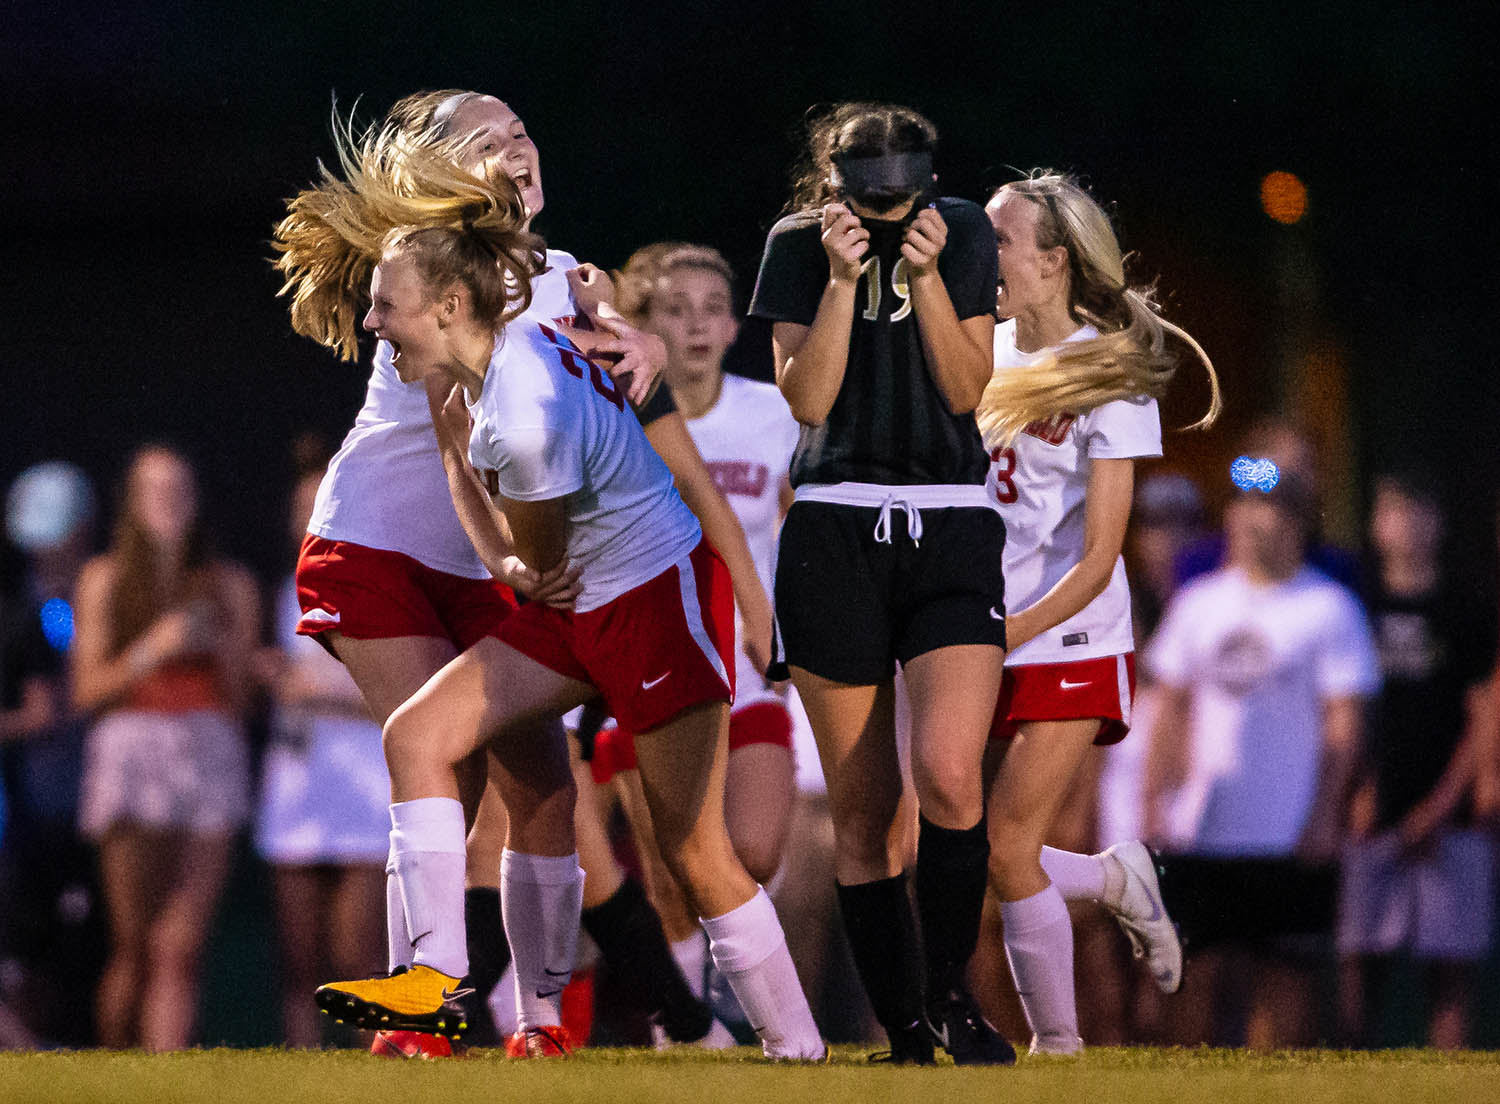 Springfield's Sarah Becker (25) celebrates with Springfield's Anna Lamsargis (12) while Sacred Heart-Griffin's Sophie Ludolph (19) walks off the field after the Senators defeated the Cyclones 2-1 in overtime in the Class 2A Rochester Sectional championship game at Rochester Elementary School, Friday, May 24, 2019, in Rochester, Ill. [Justin L. Fowler/The State Journal-Register]